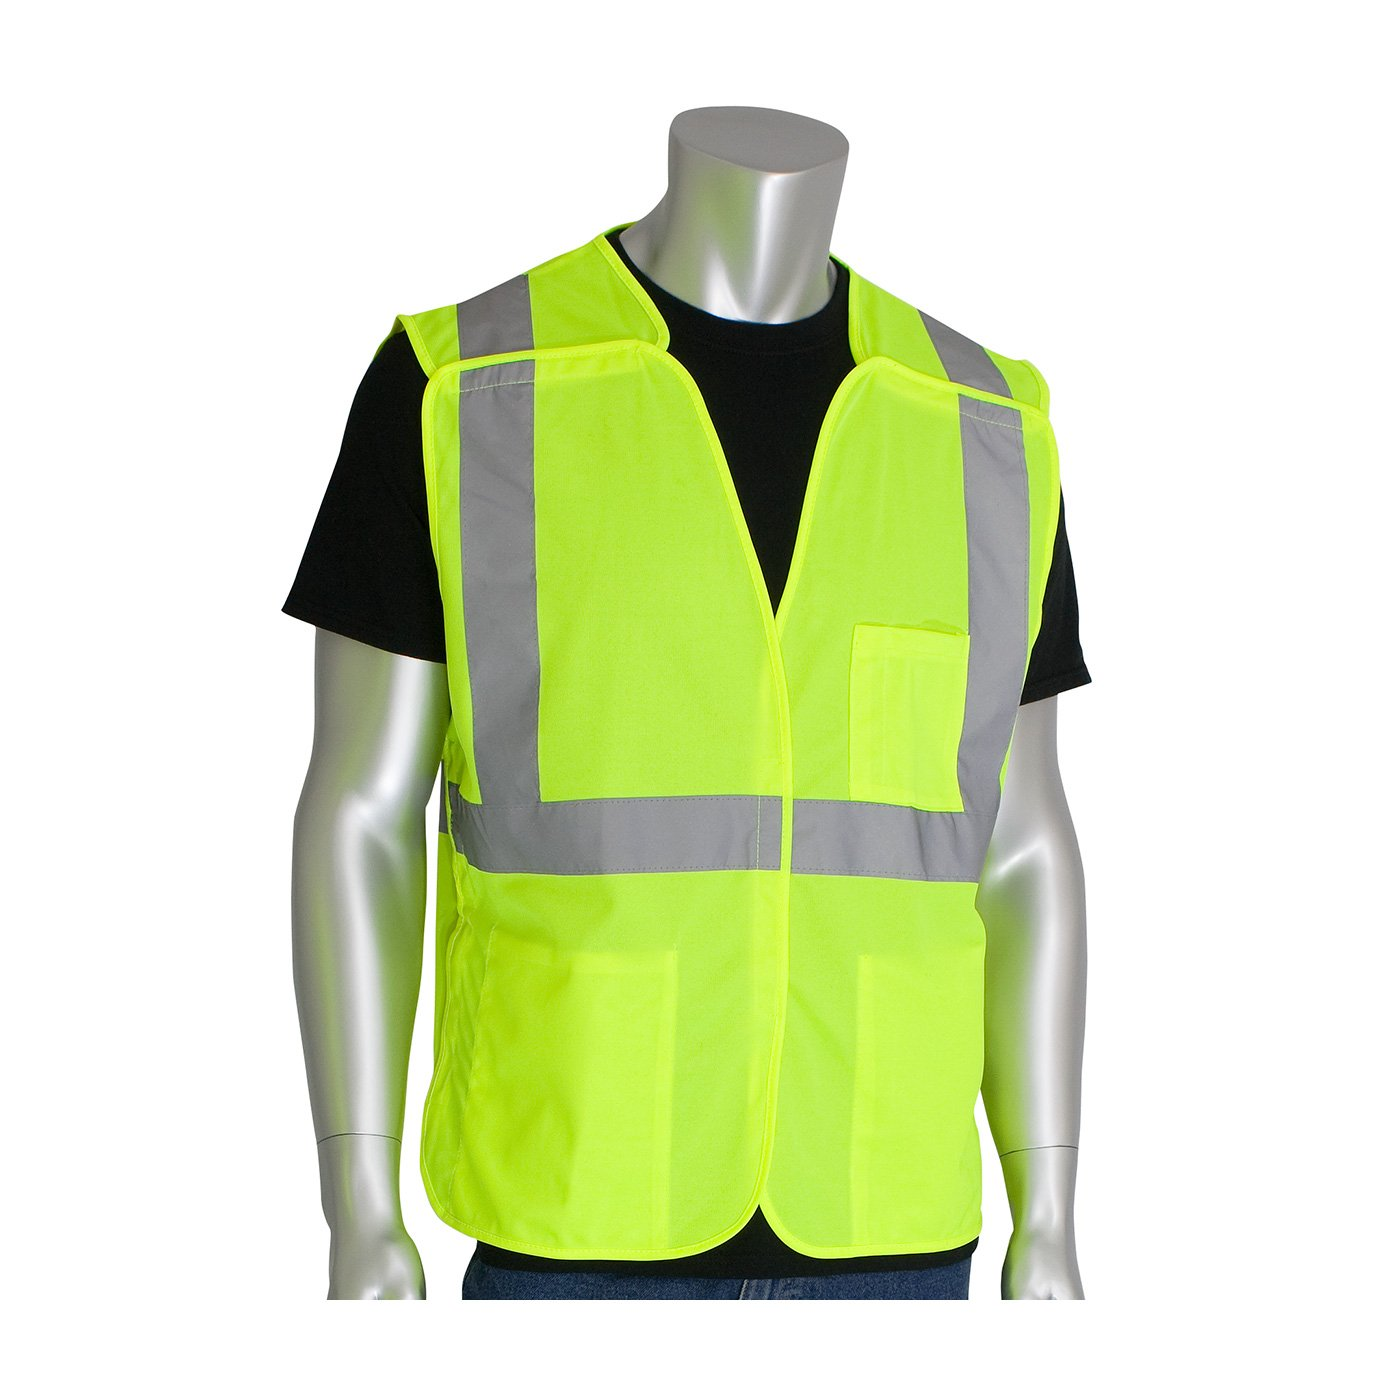 Ideal for construction and anywhere hi-visibility apparel is necessary Breathable polyester mesh Pack of 5 Designed to ANSI 2015 standards Breakaway provides additional safety around extr Worktex Safety WT56004 Safety Vest shipyards municipalities